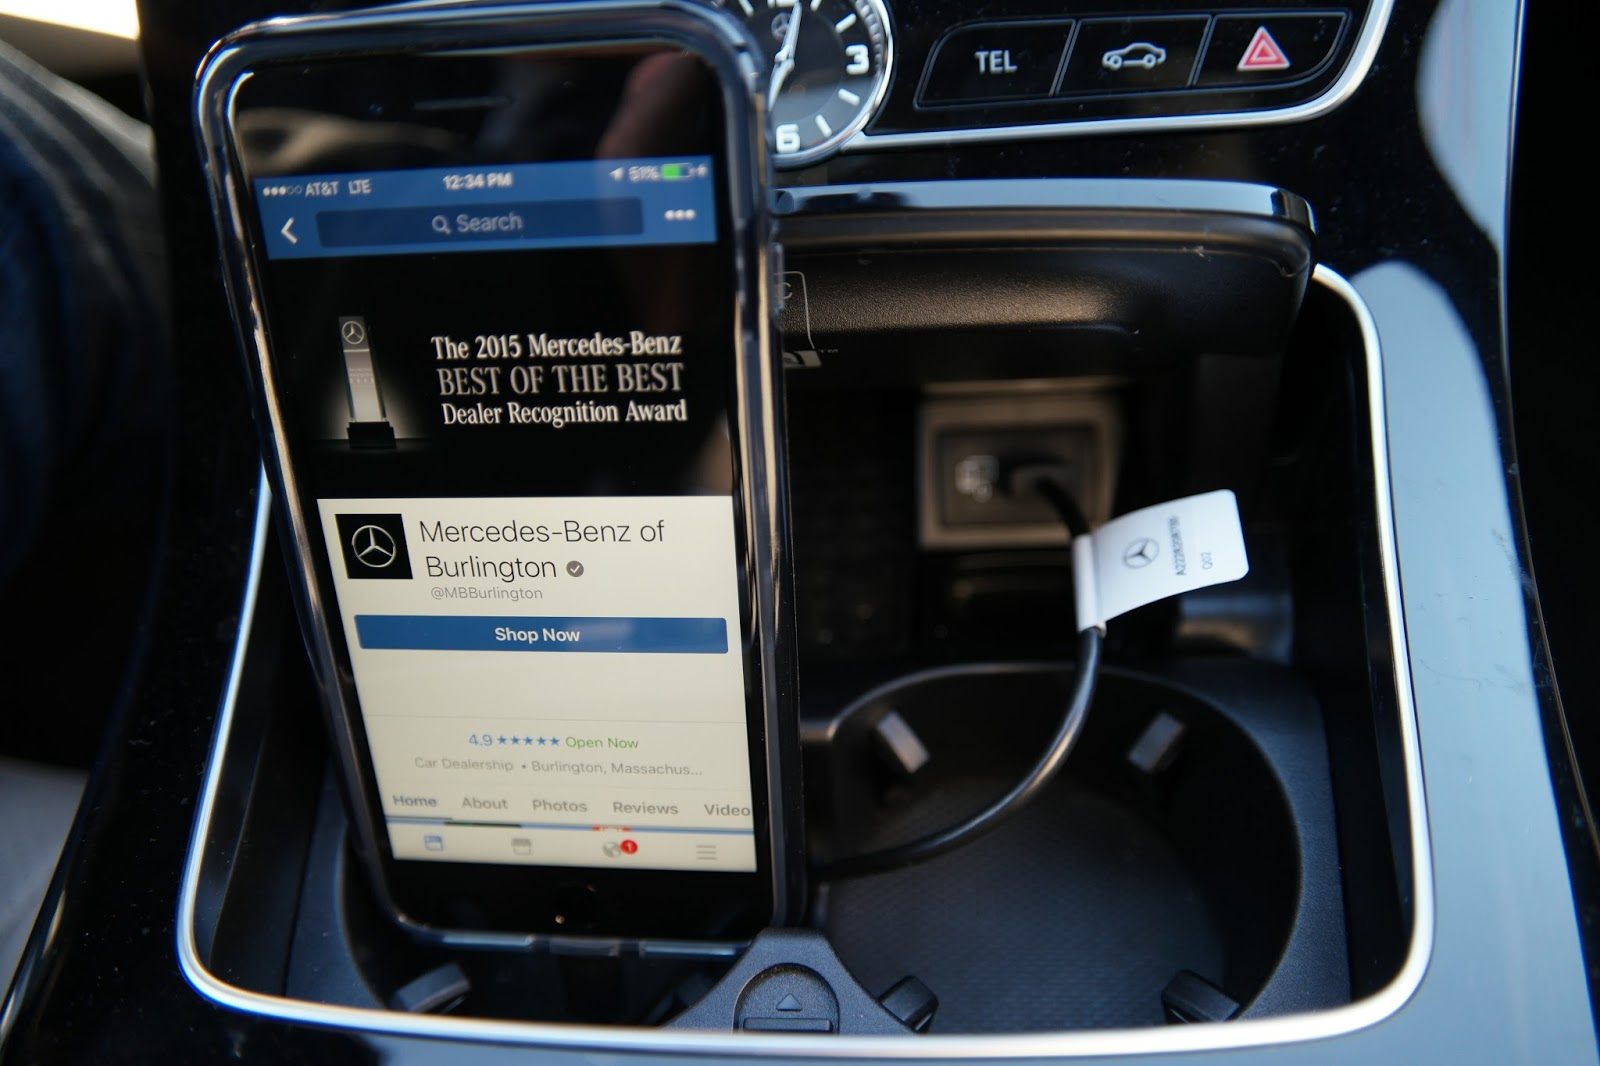 Off On A Tangent: 2017 Mercedes-Benz E300 with Apple CarPlay